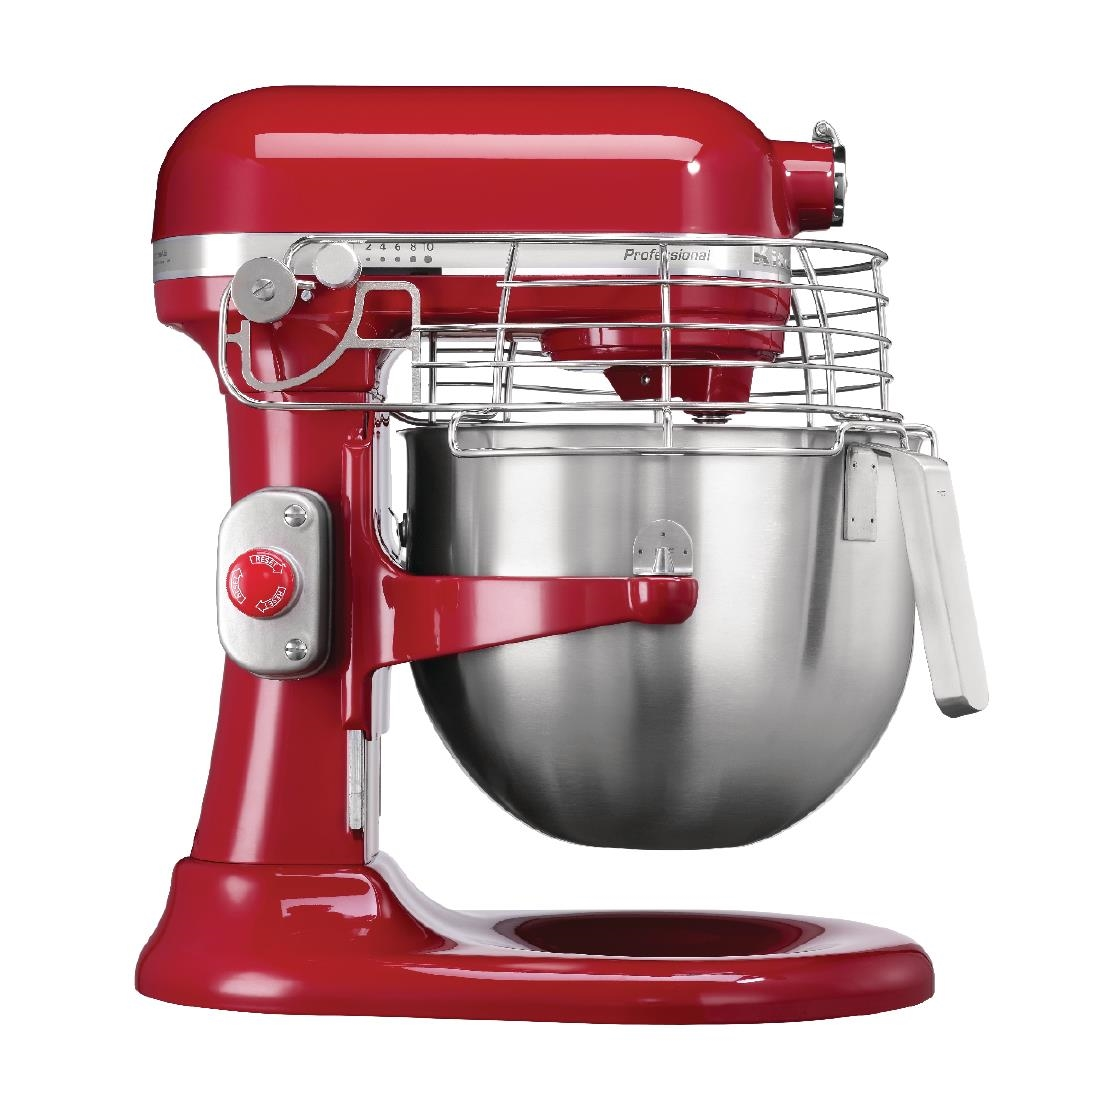 KitchenAid Professional Mixer Red - CB576 - Buy Online at Nisbets on pioneer professional mixer, hobart professional mixer, viking professional mixer, yamaha professional mixer, best professional mixer, pioneer dj mixer, www.kitchenaid mixer, samsung professional mixer,